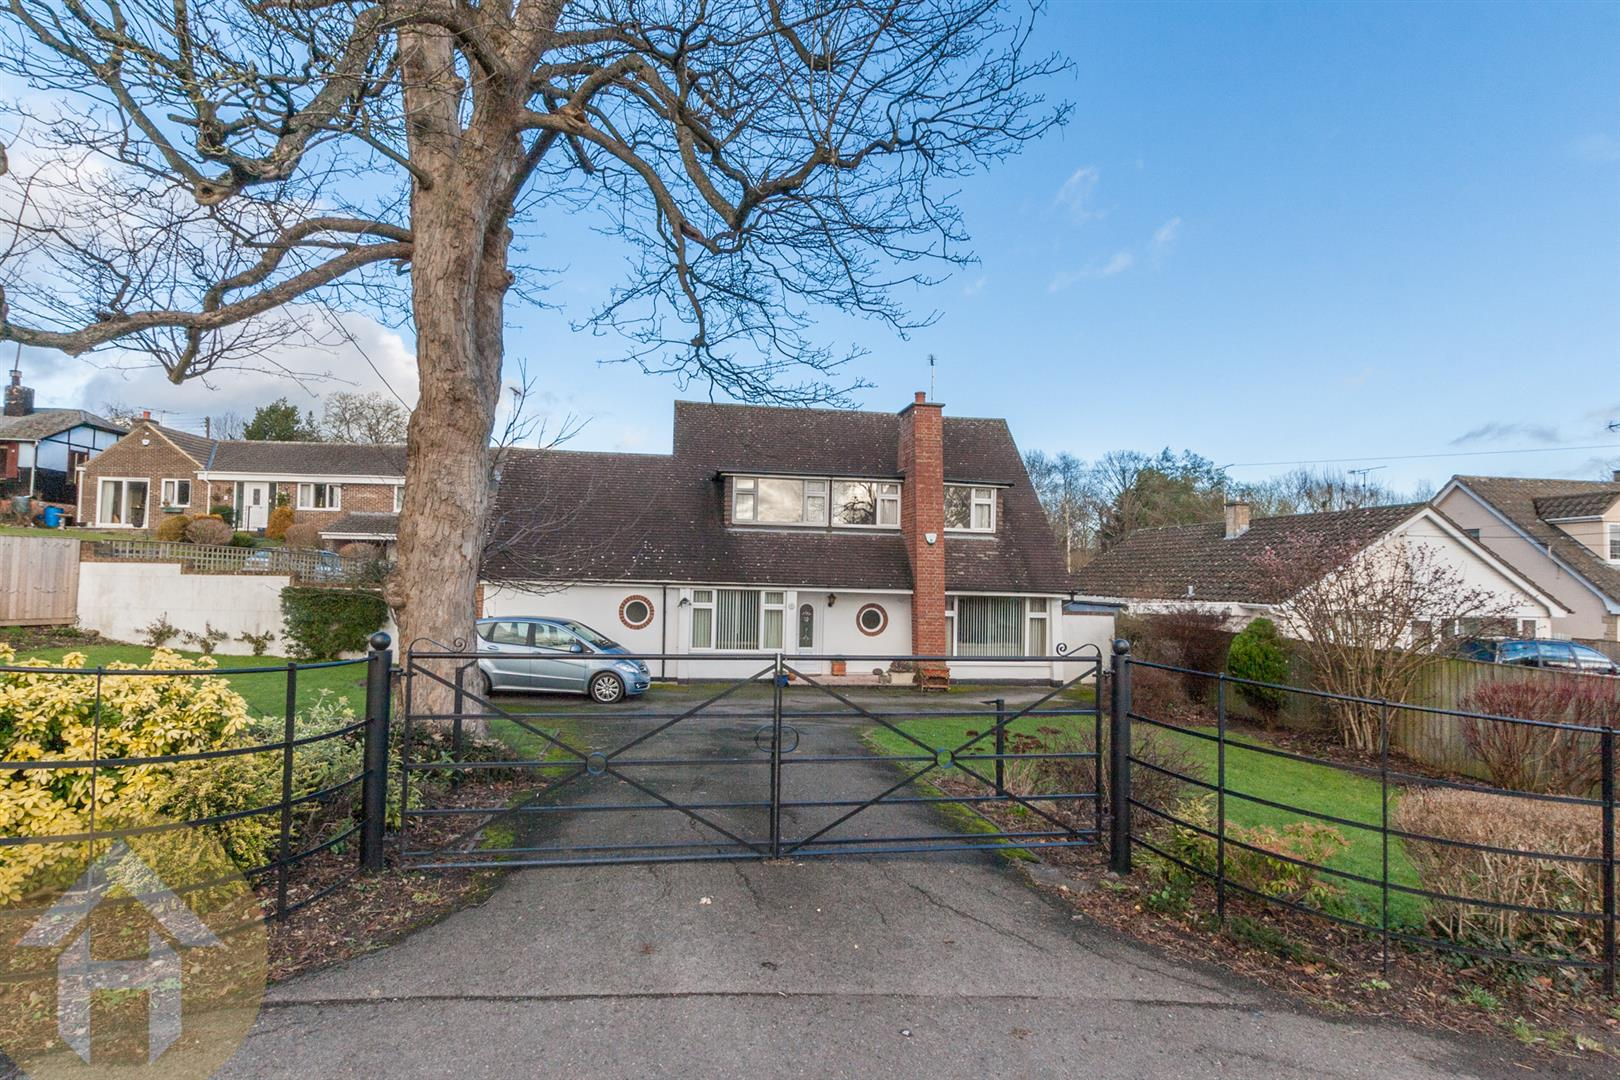 4 Bedrooms Detached House for sale in Station Road, Royal Wootton Bassett